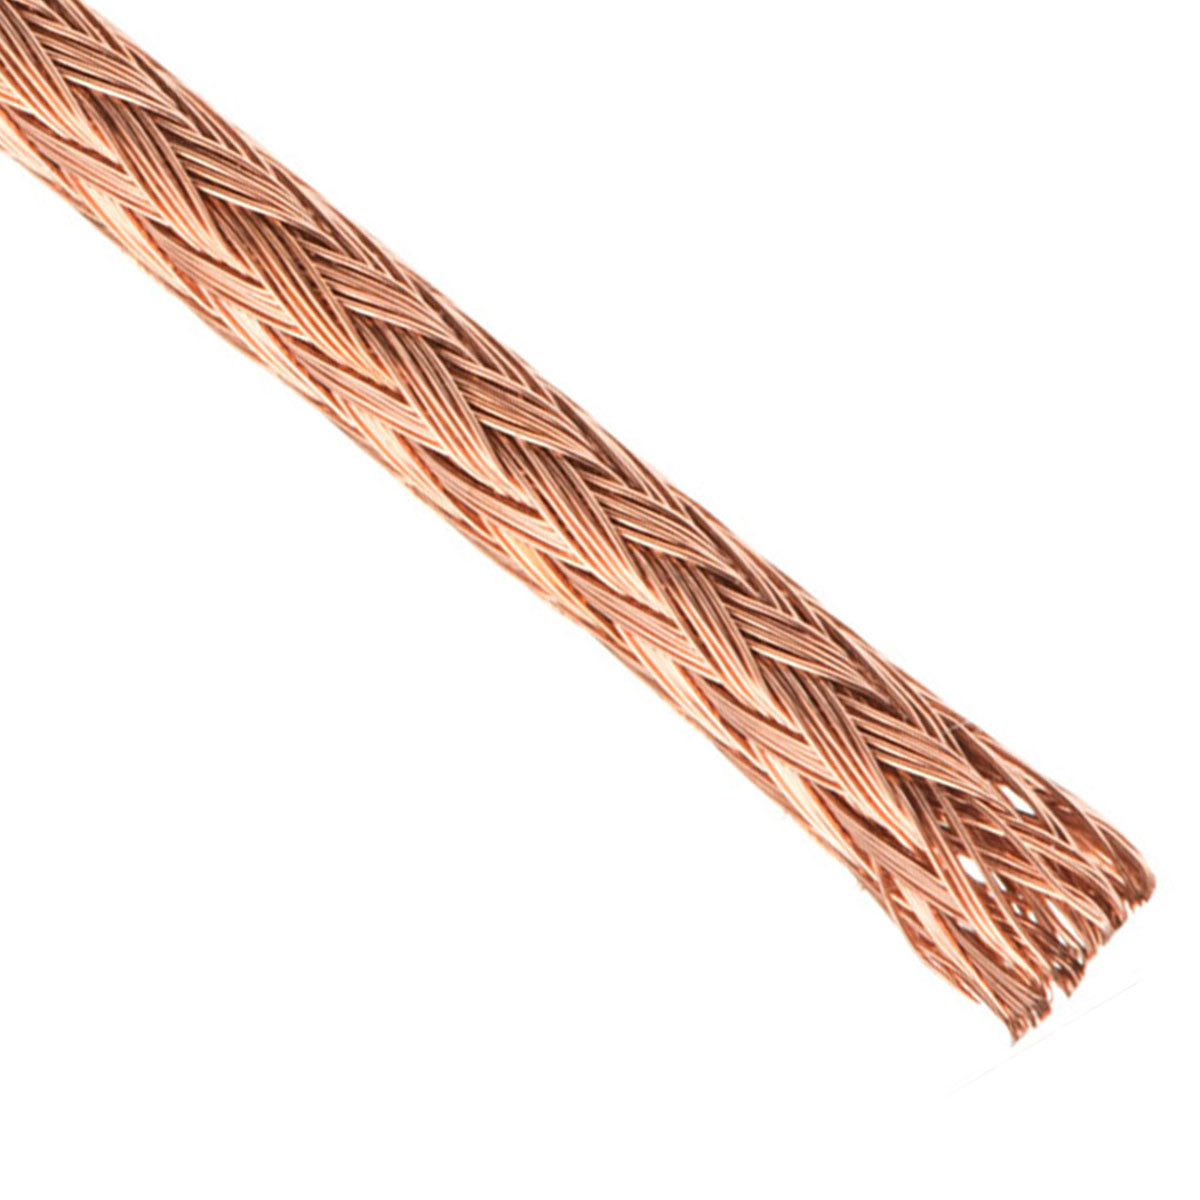 Bare Copper Braided Sleeving | 100% Pure